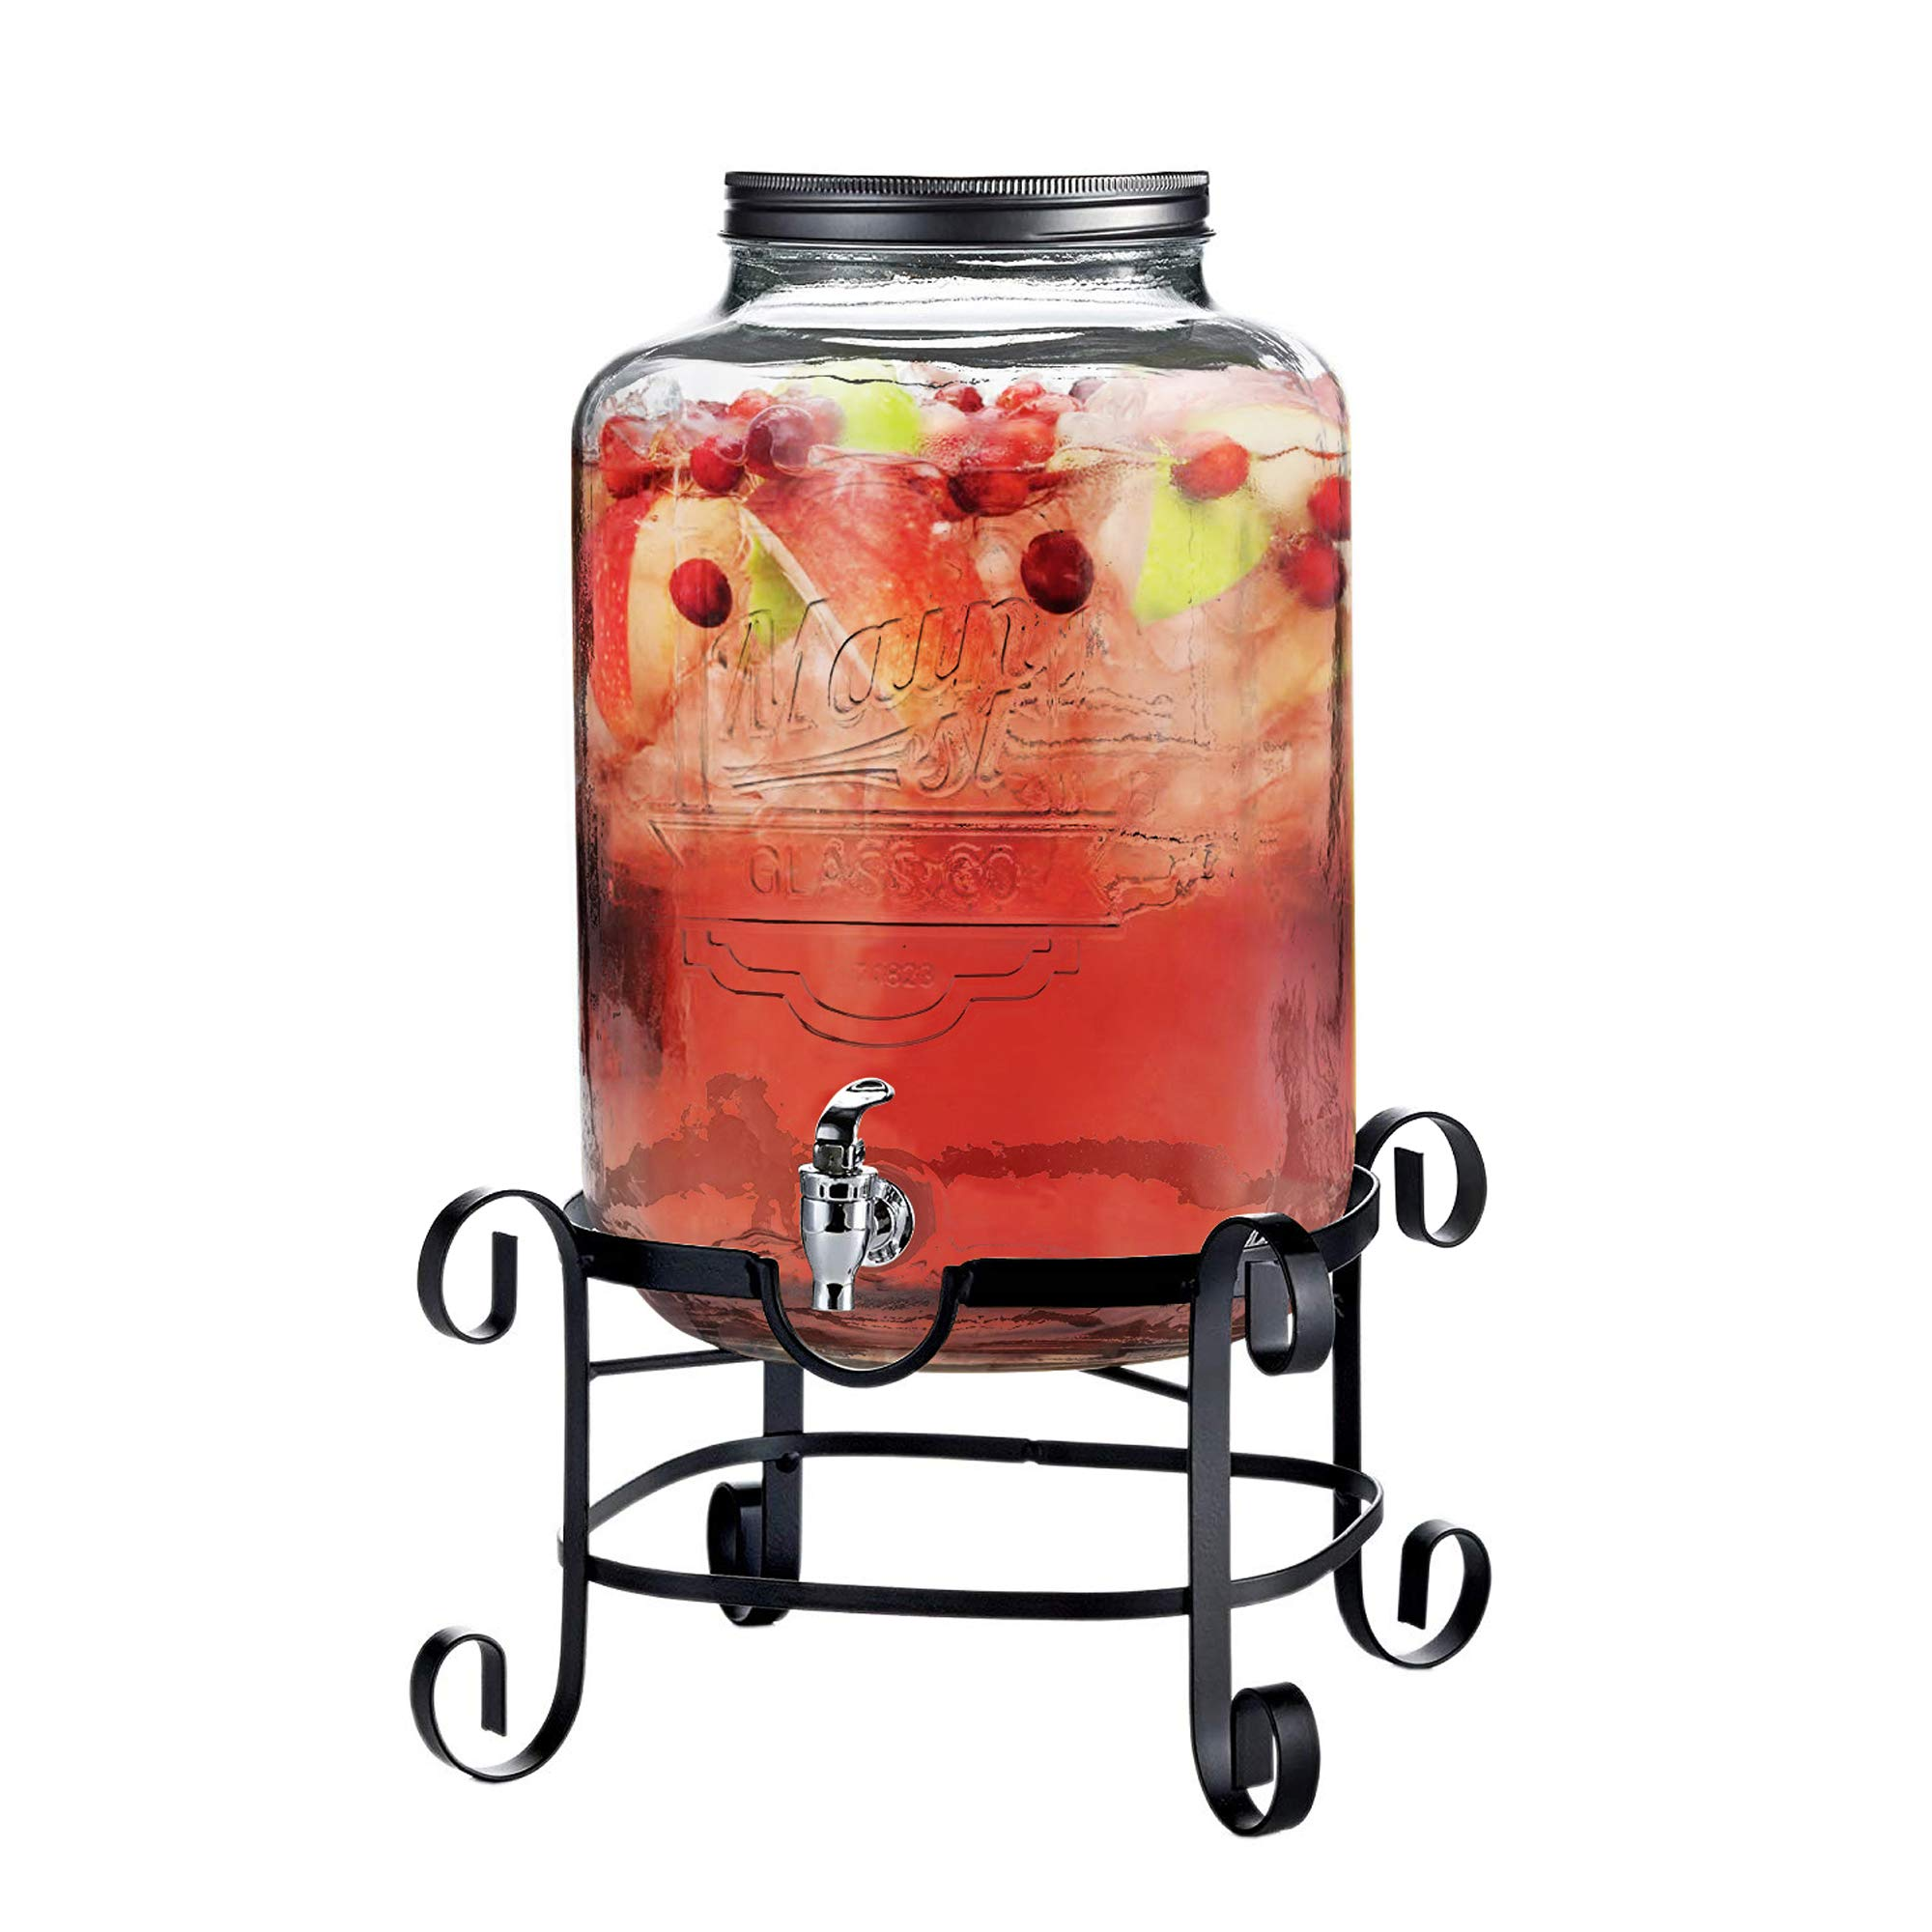 Style Setter Main Street 210263-GB Beverage Dispenser with Stand Cold Drink with 3 Gallon Capacity Glass Jug and Leak-Proof Acrylic Spigot in Gift Box For Parties, Weddings, 11x18'', Clear